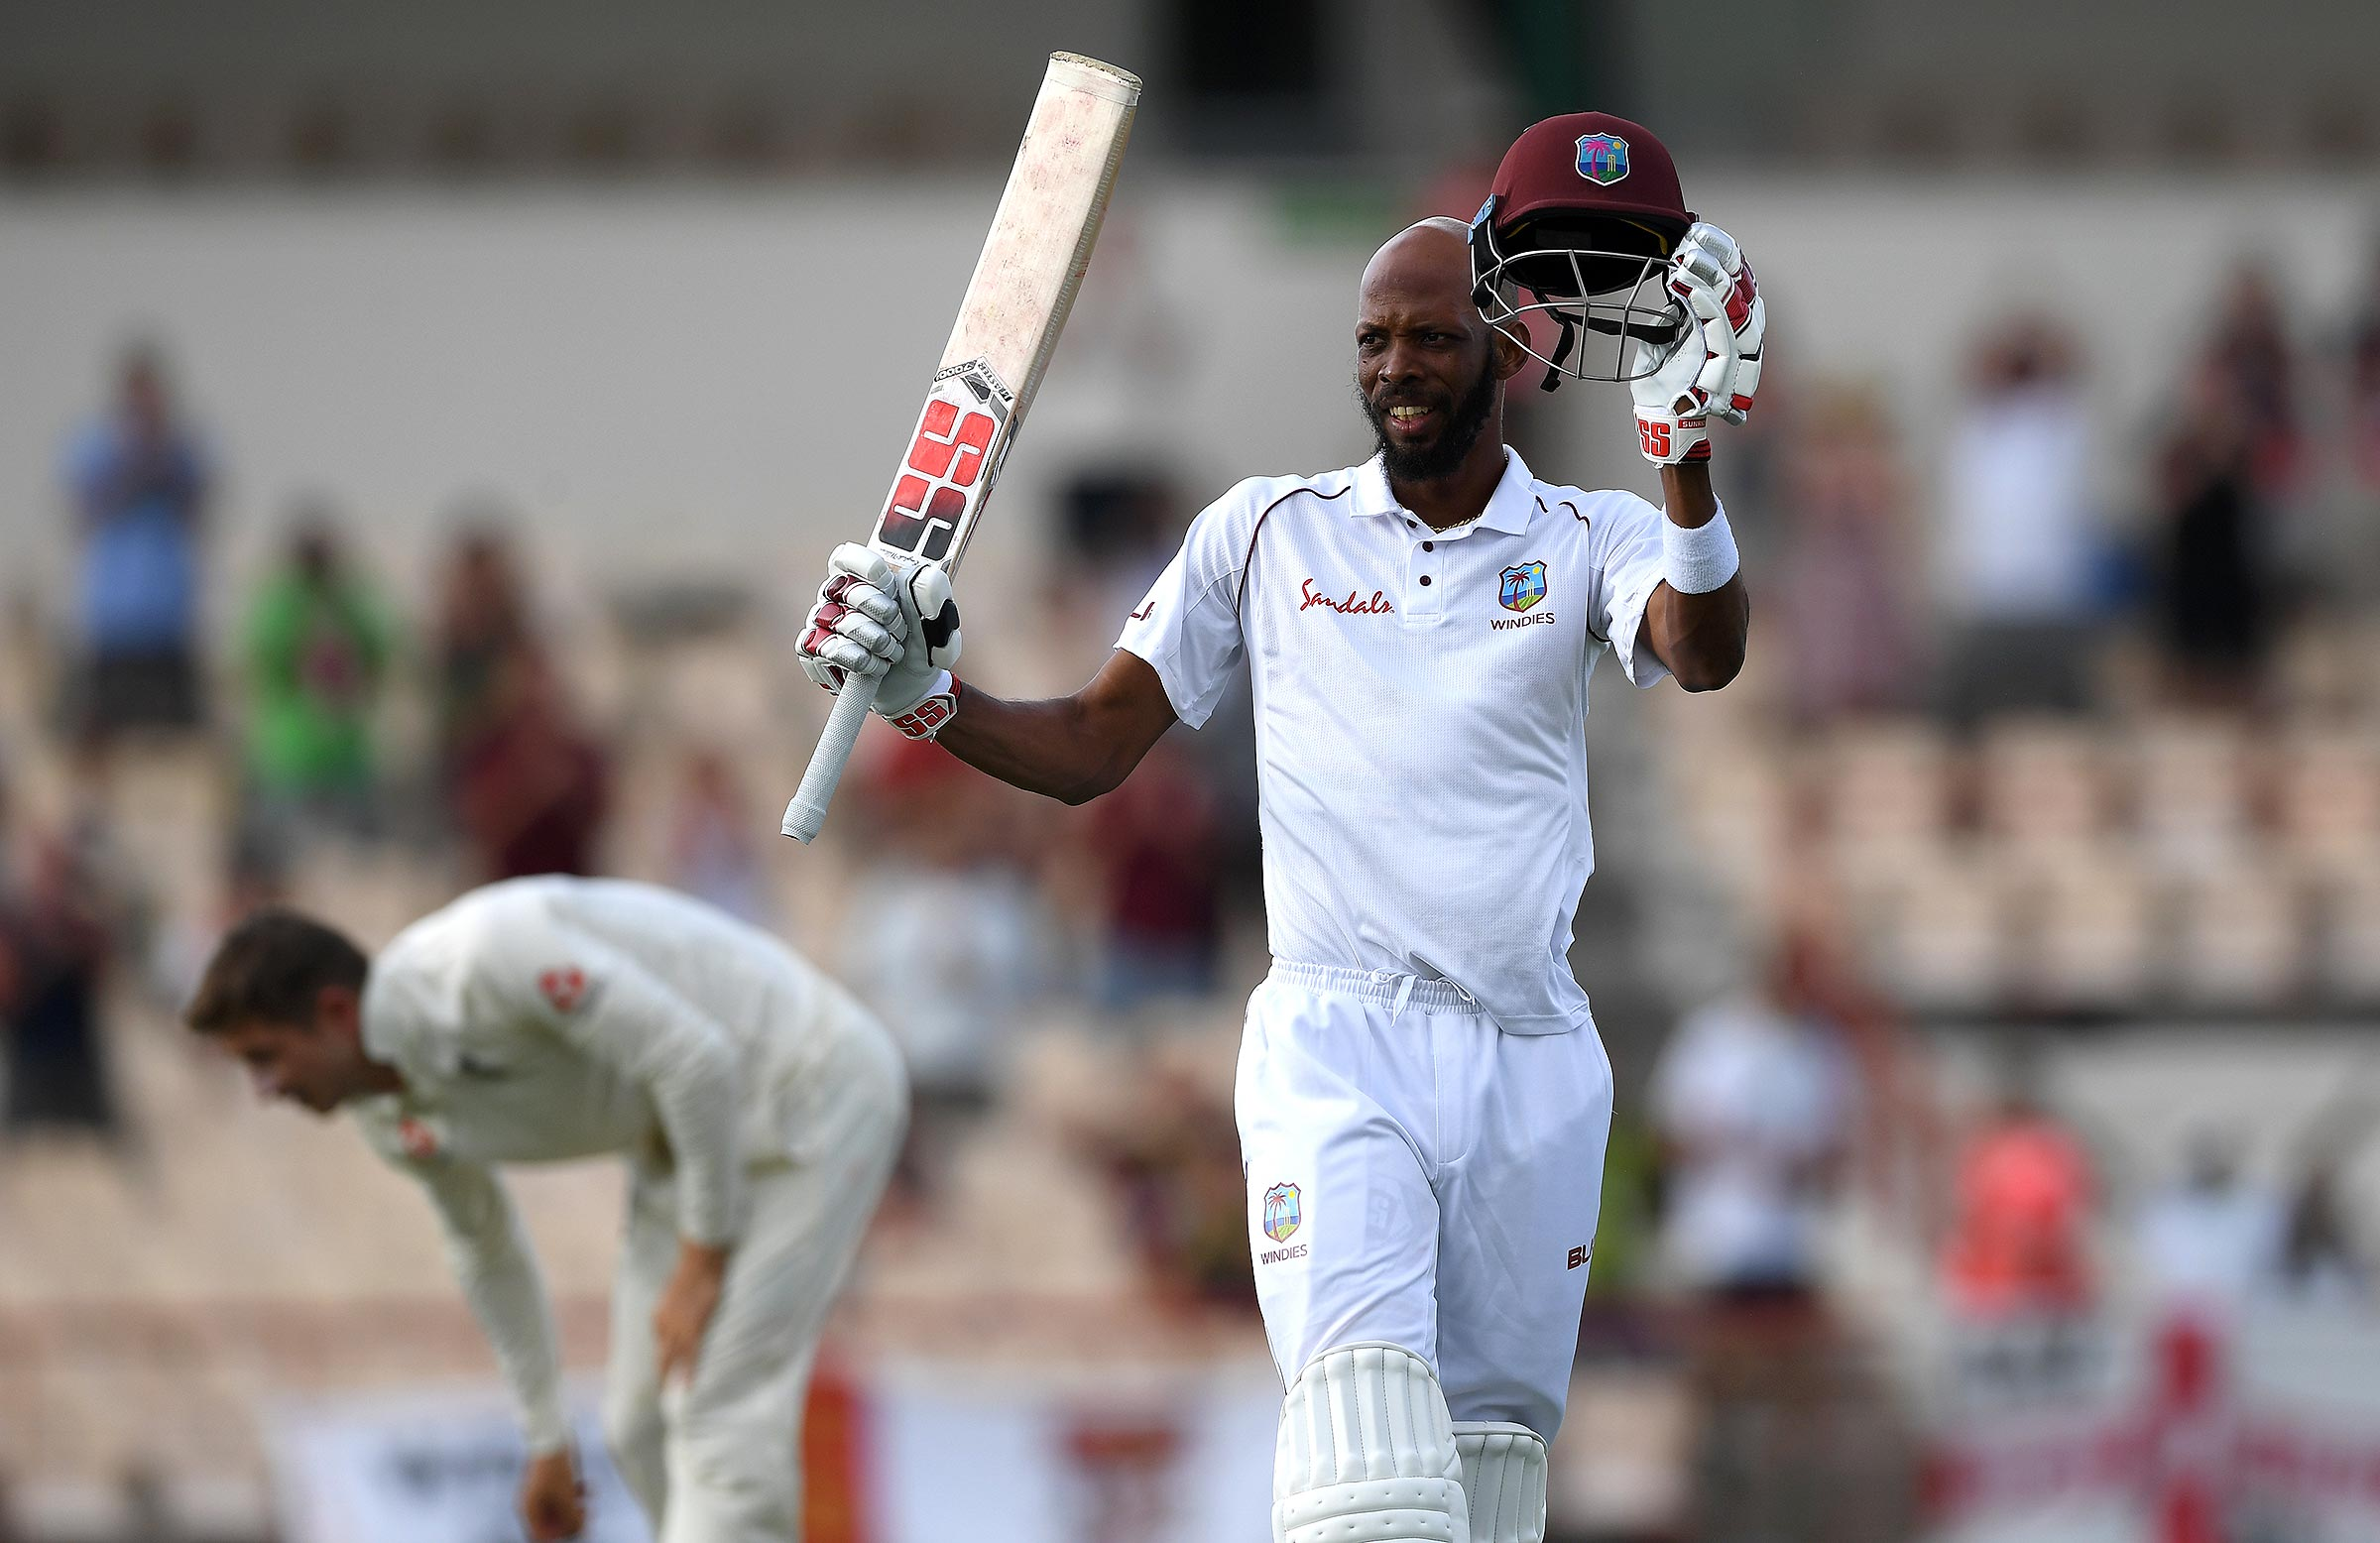 Chase celebrates his century late in the match // Getty